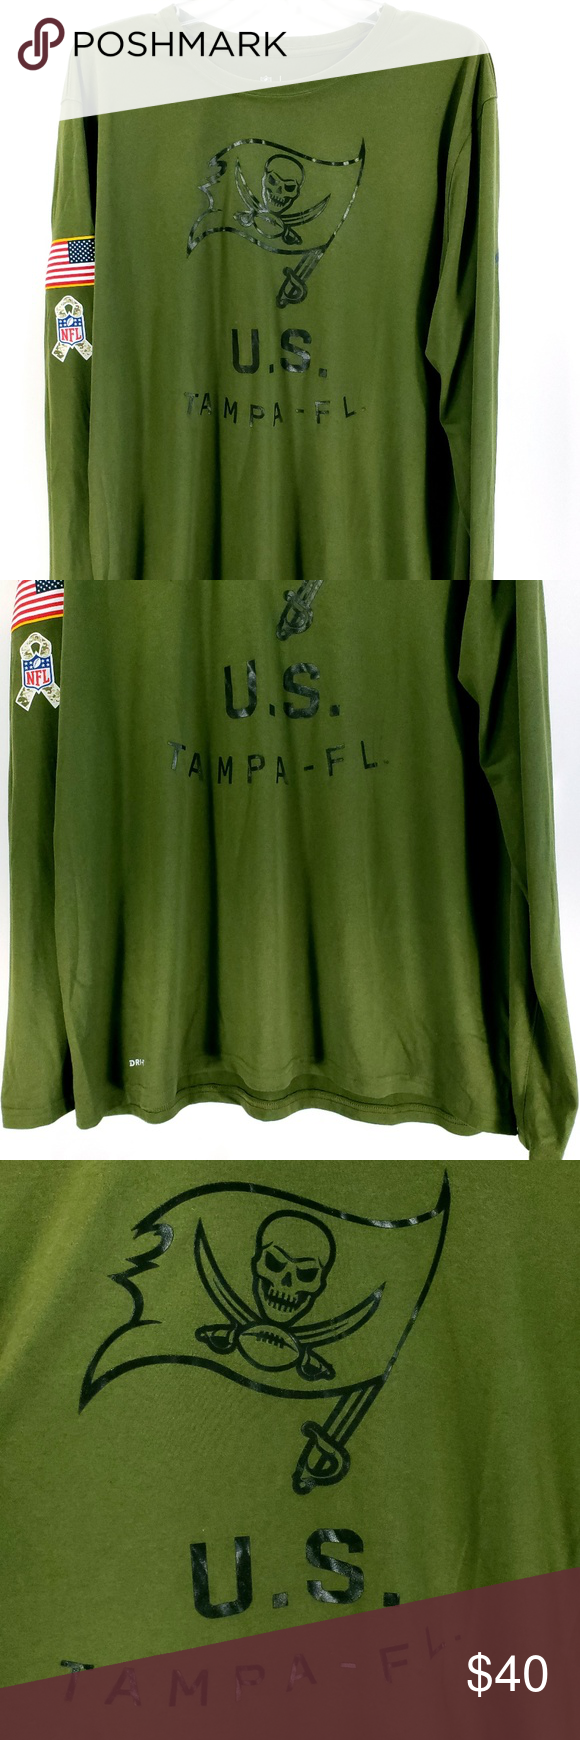 Tampa Bay Buccaneers NFL Salute to Service Tee New with tags men's Nike NFL Tampa Bay Salute to Service The Nike Tee  - Size XL on tag - Olive drab would be my best guess on the color - Salute to Service edition - Dri-Fit - Long sleeve - 938507-395 - 100% polyester - Measures approximately when laid flat:  22 1/